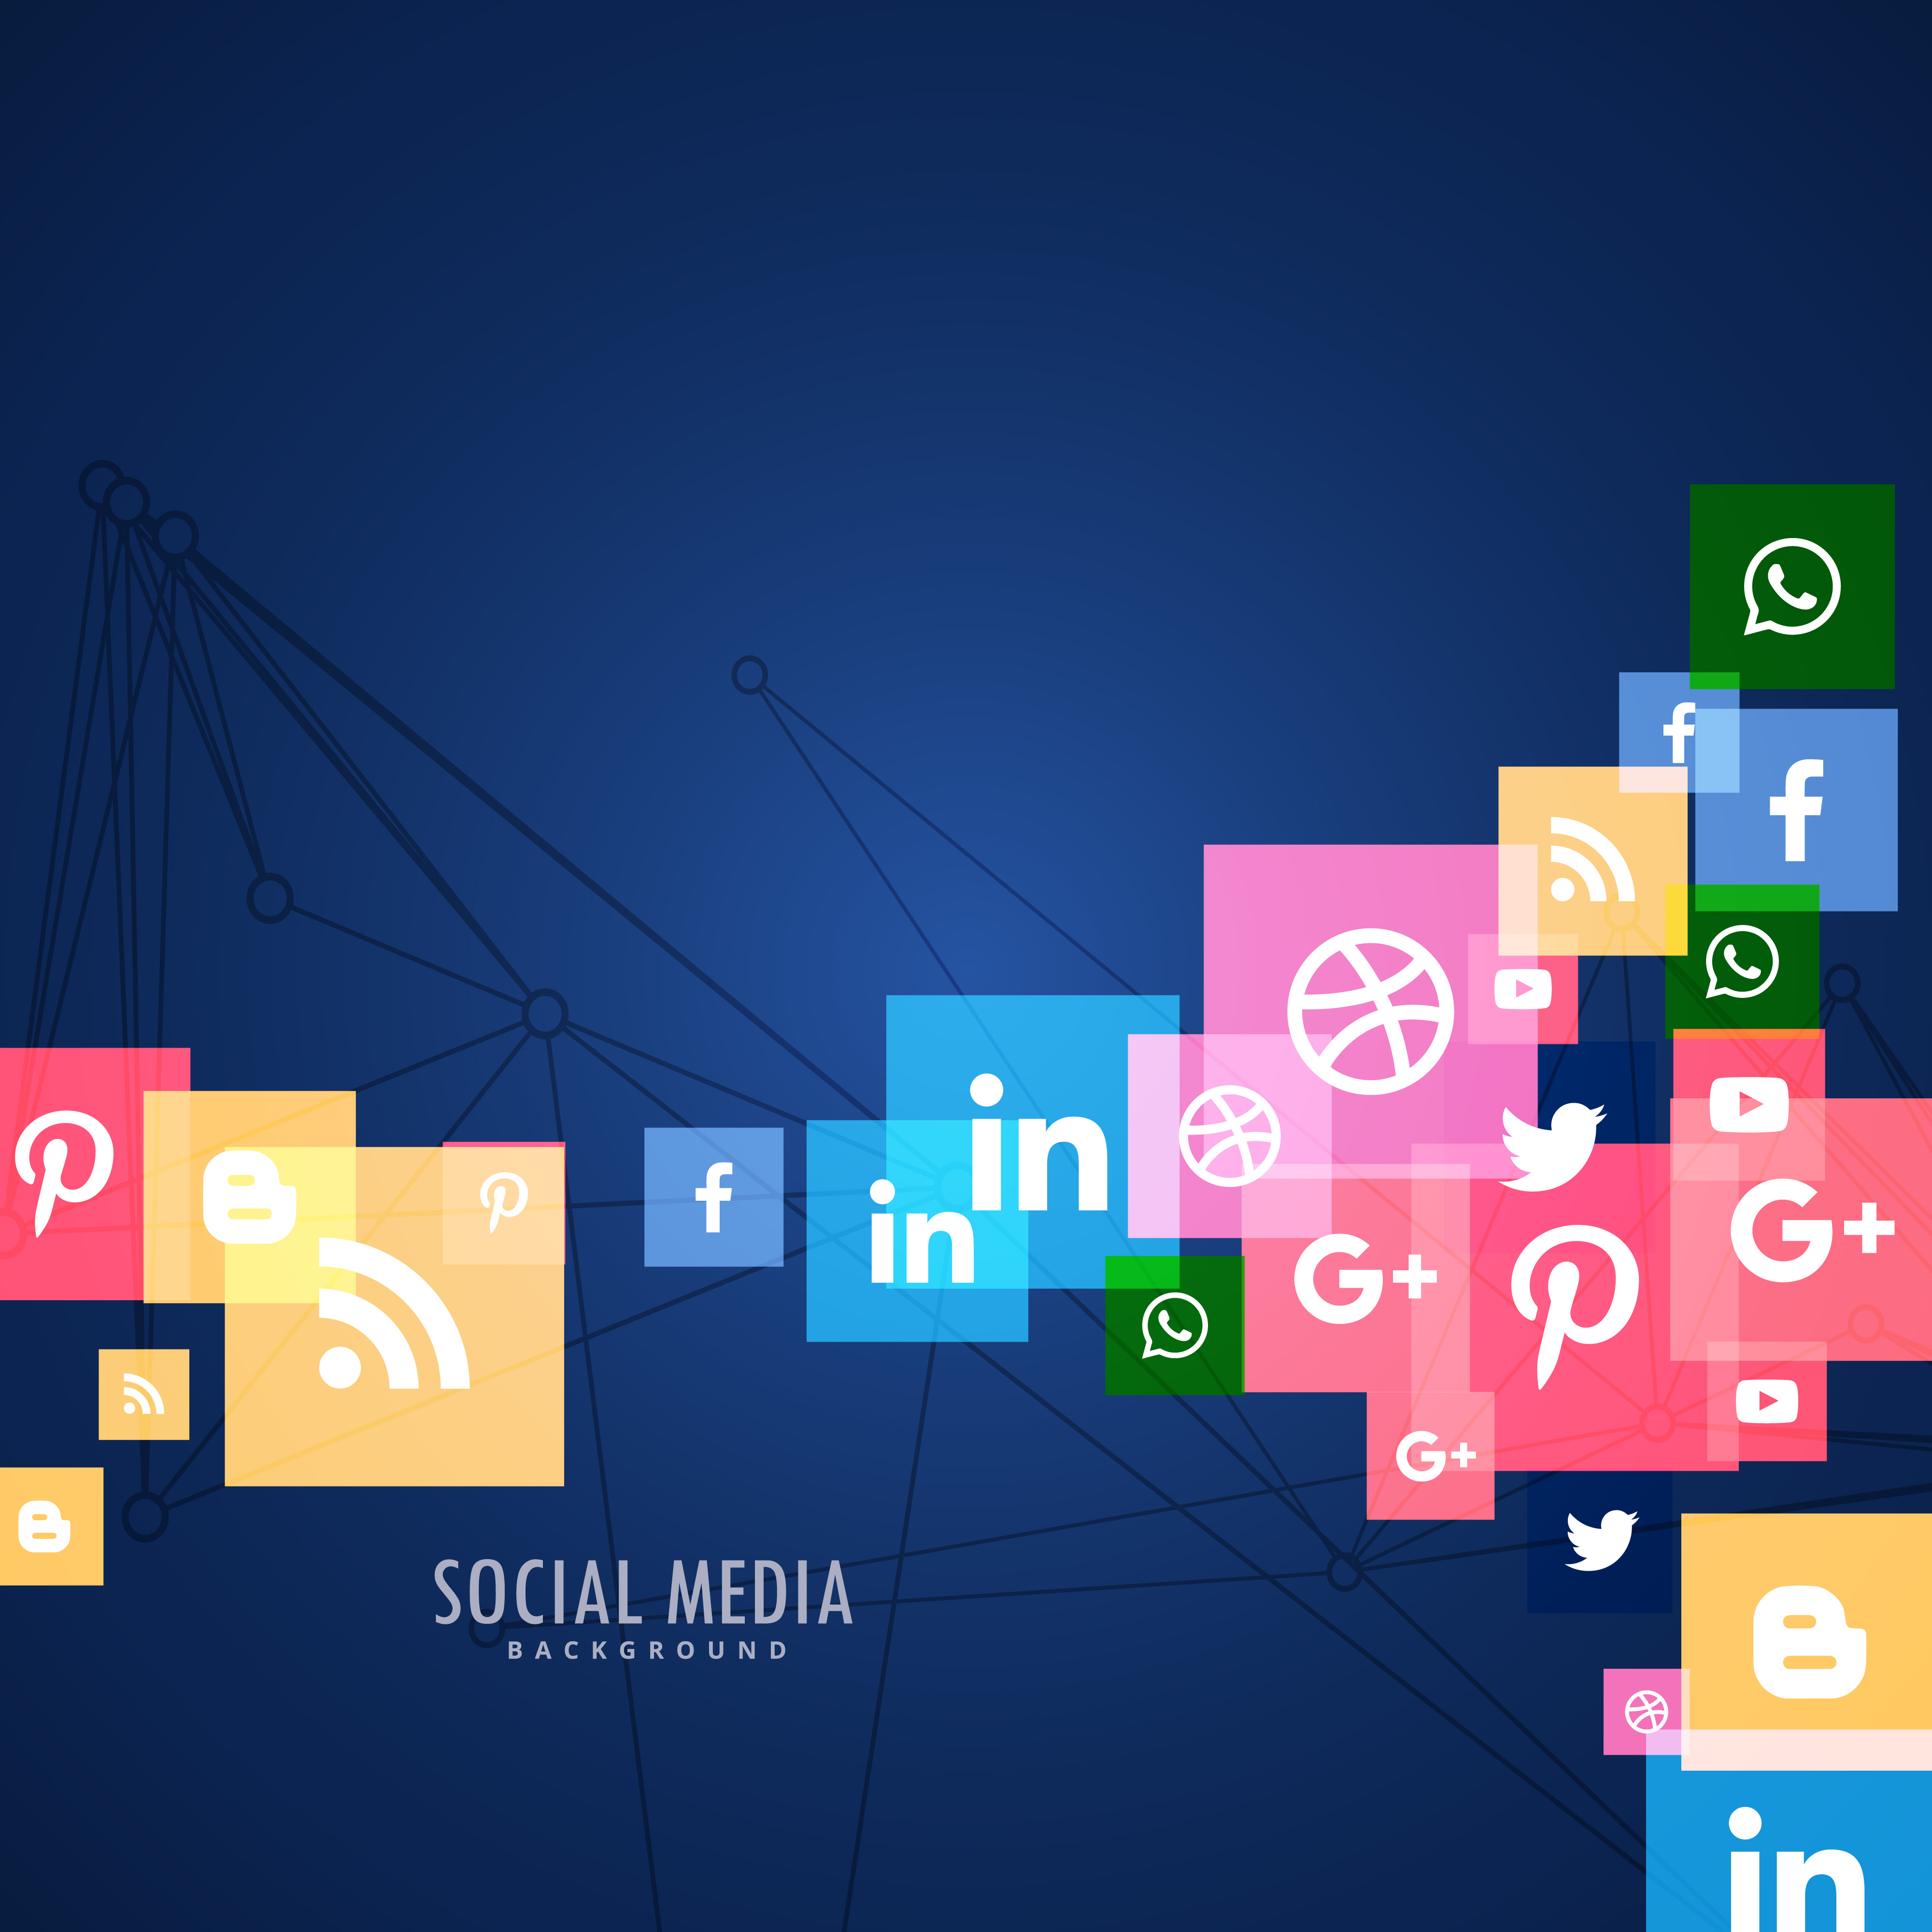 blue-background-with-social-media-icons-vector.jpg